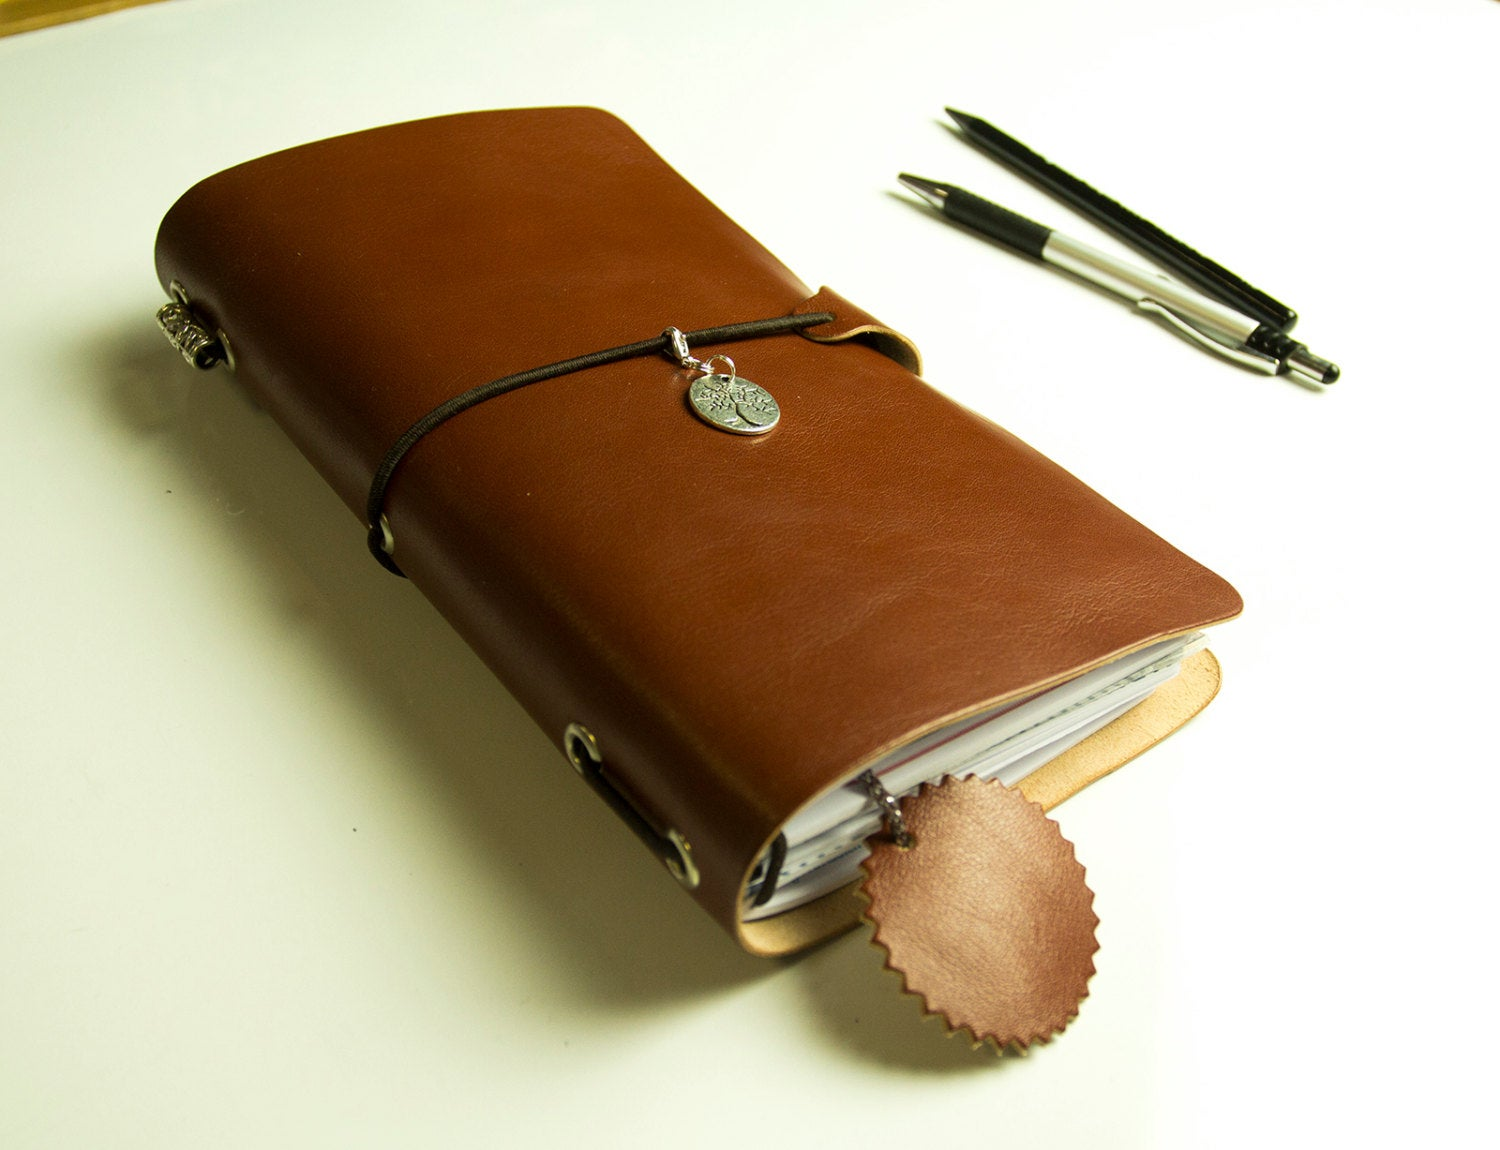 Habits Planner 2020 Travelers Leather Notebook with Original Inserts Mission Roles Planner